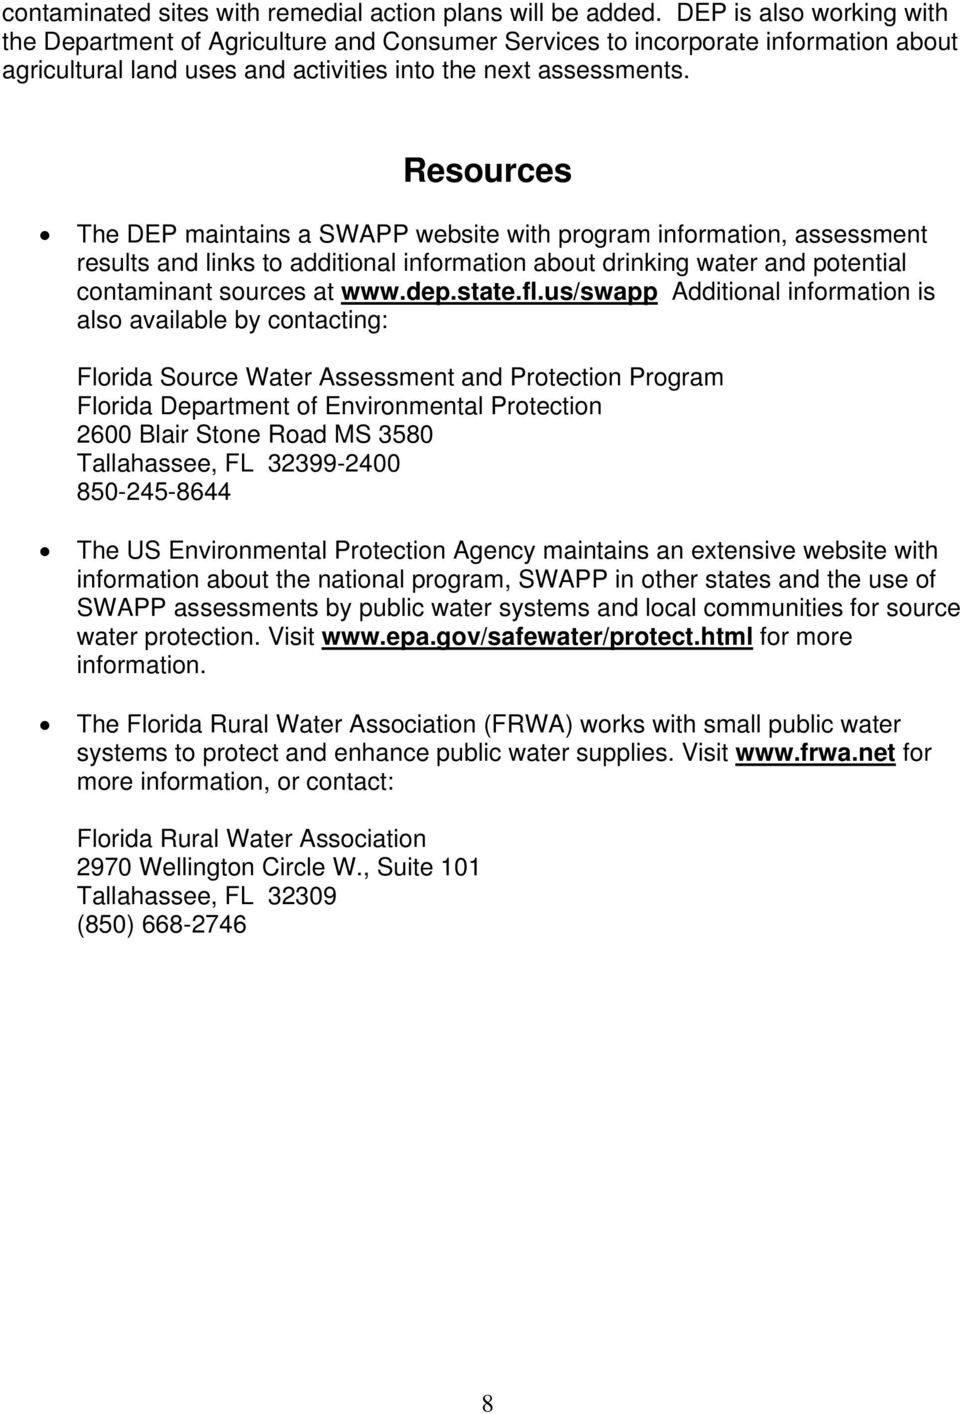 Resources The DEP maintains a SWAPP website with program information, assessment results and links to additional information about drinking water and potential contaminant sources at www.dep.state.fl.